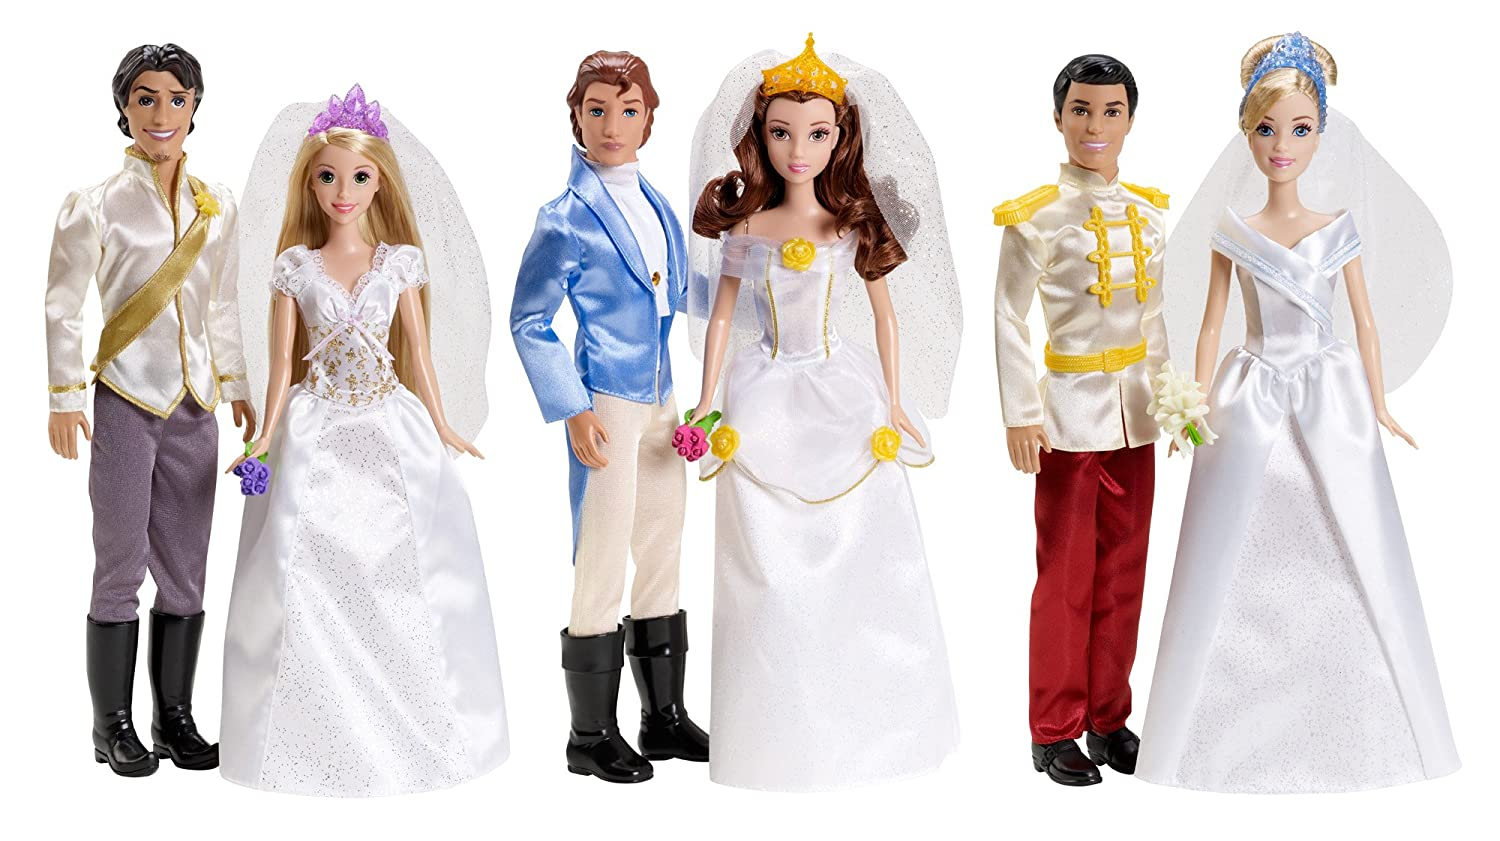 Disney Princess Fairytale Wedding Gift Set $34.98 from Toys R Us ...